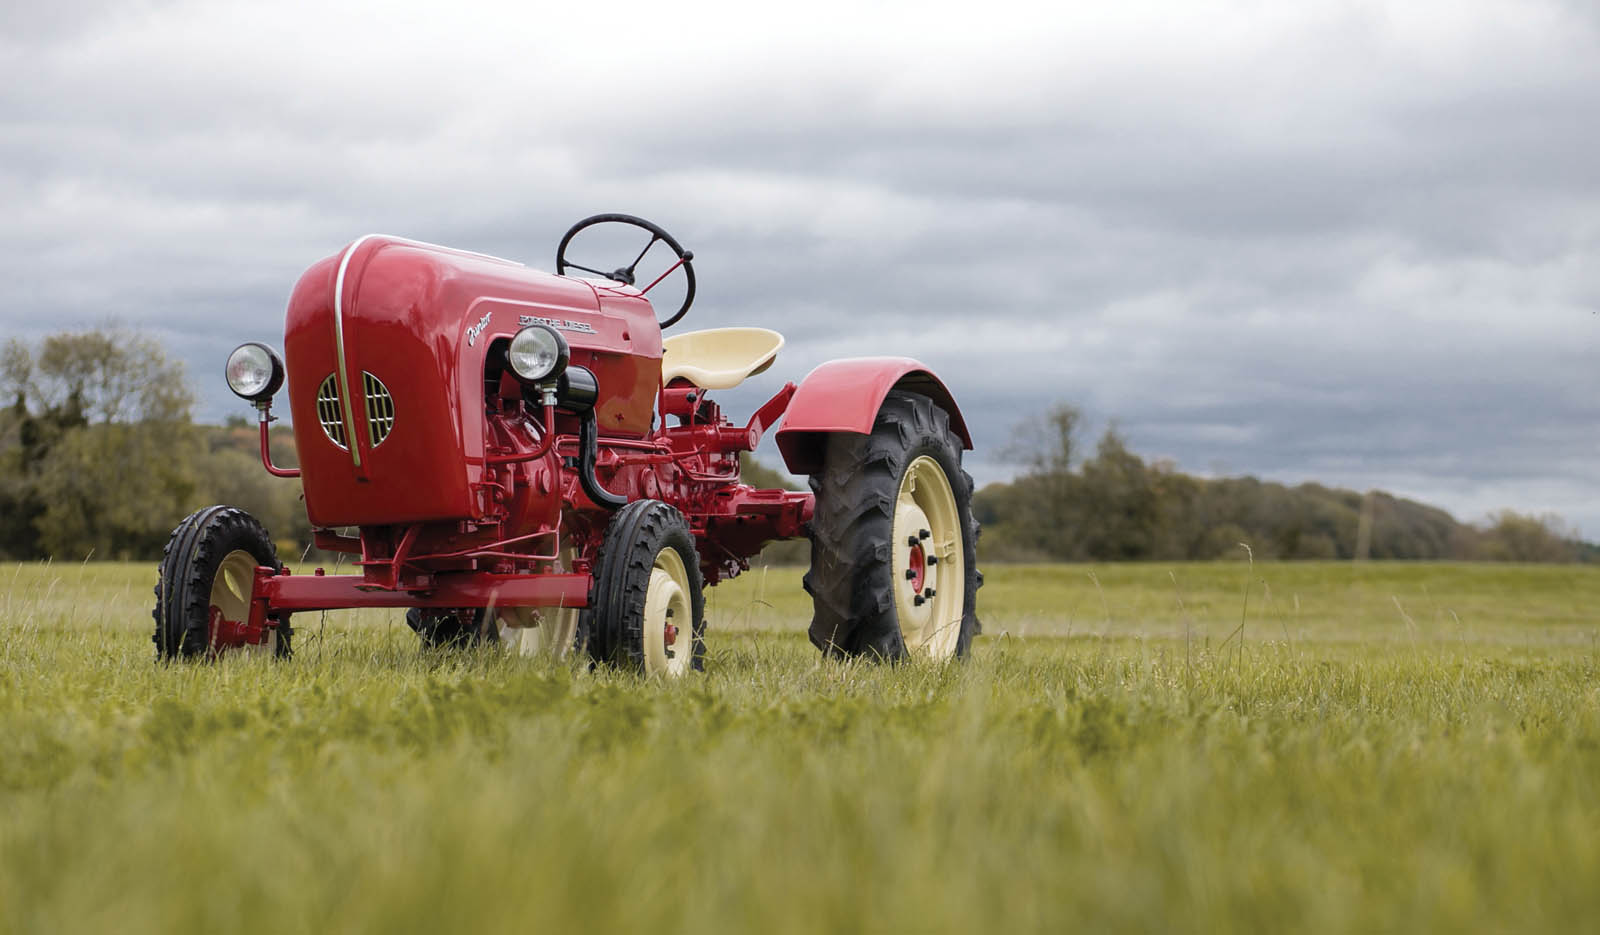 Porsche Diesel Junior 108 L 1960 in auction (1)